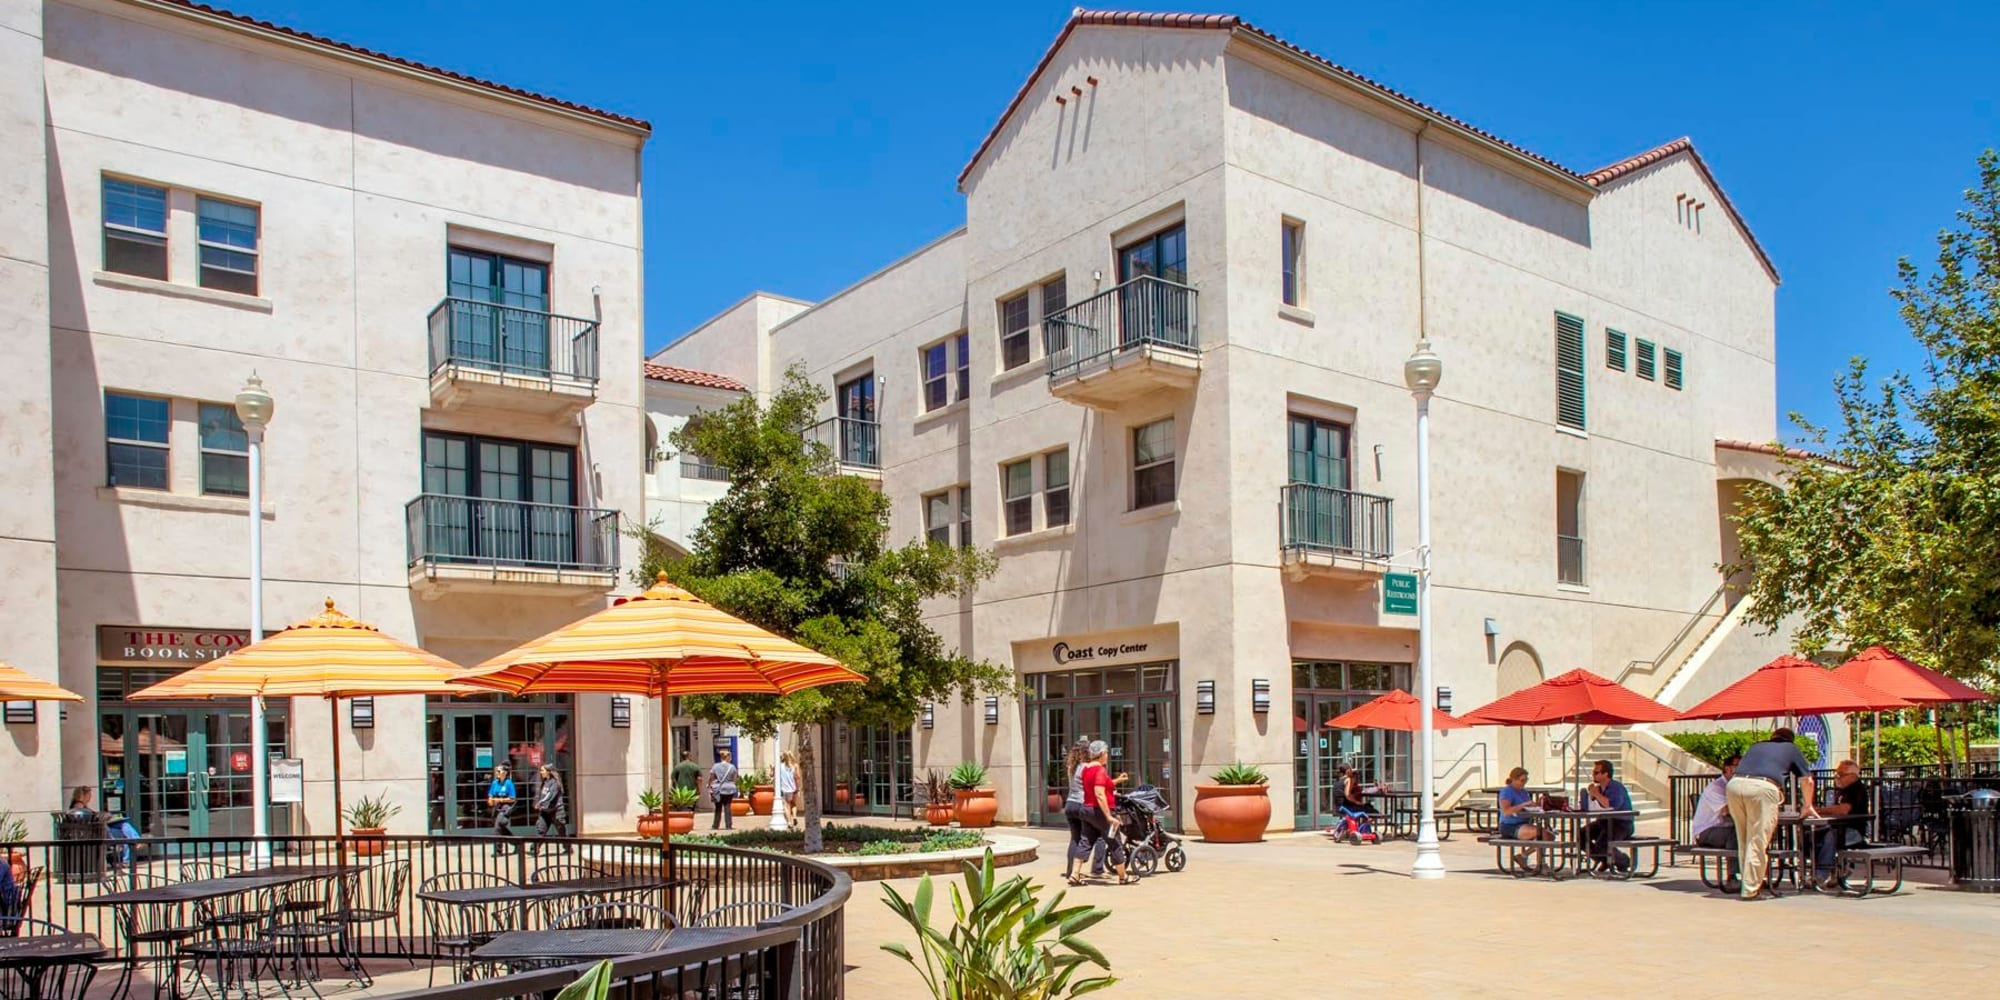 Gorgeous day in the retail courtyard at Mission Hills in Camarillo, California